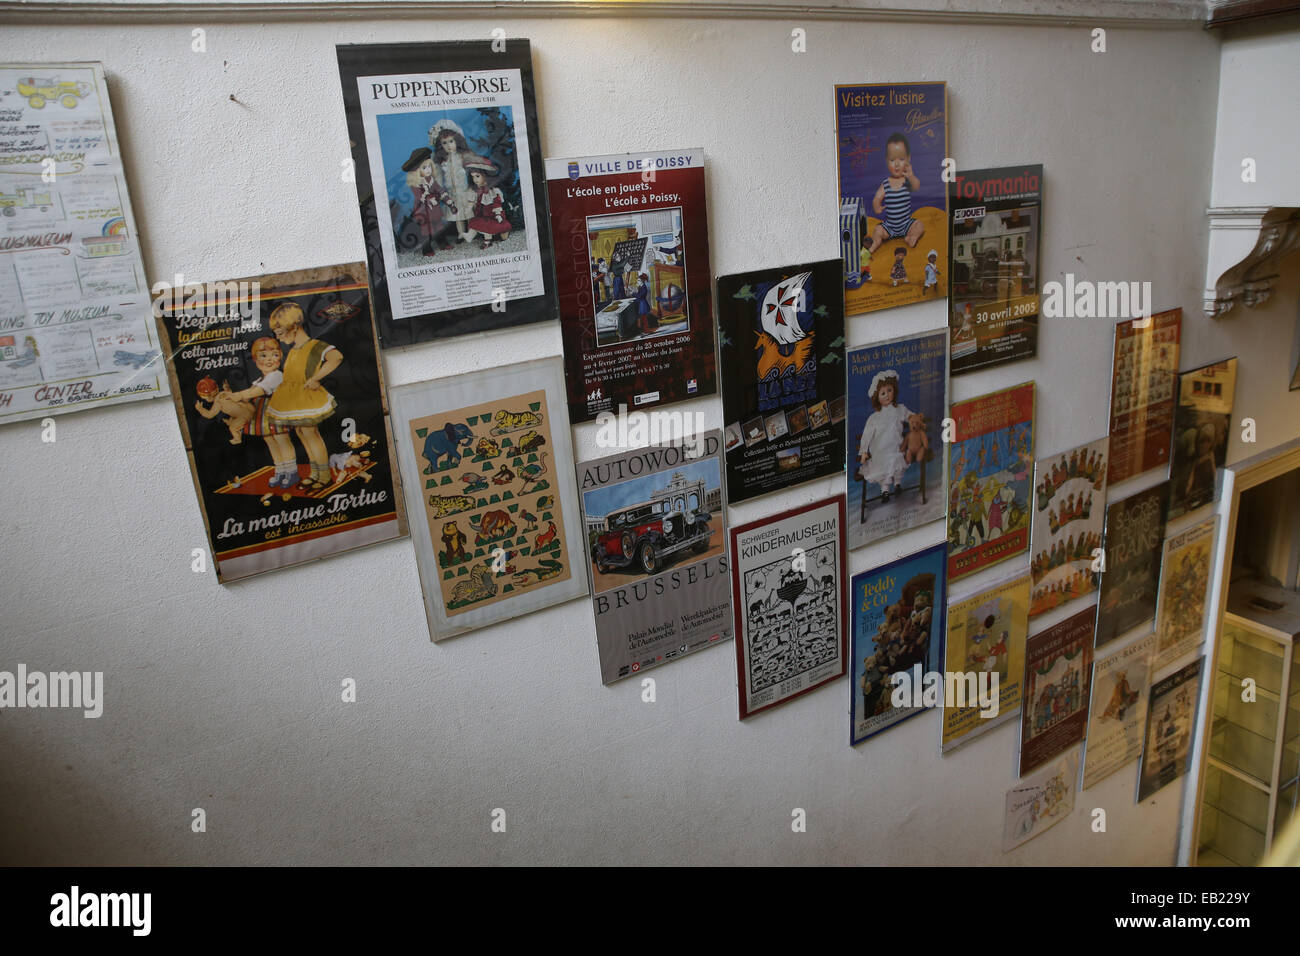 vintage toy poster advertisements europe - Stock Image